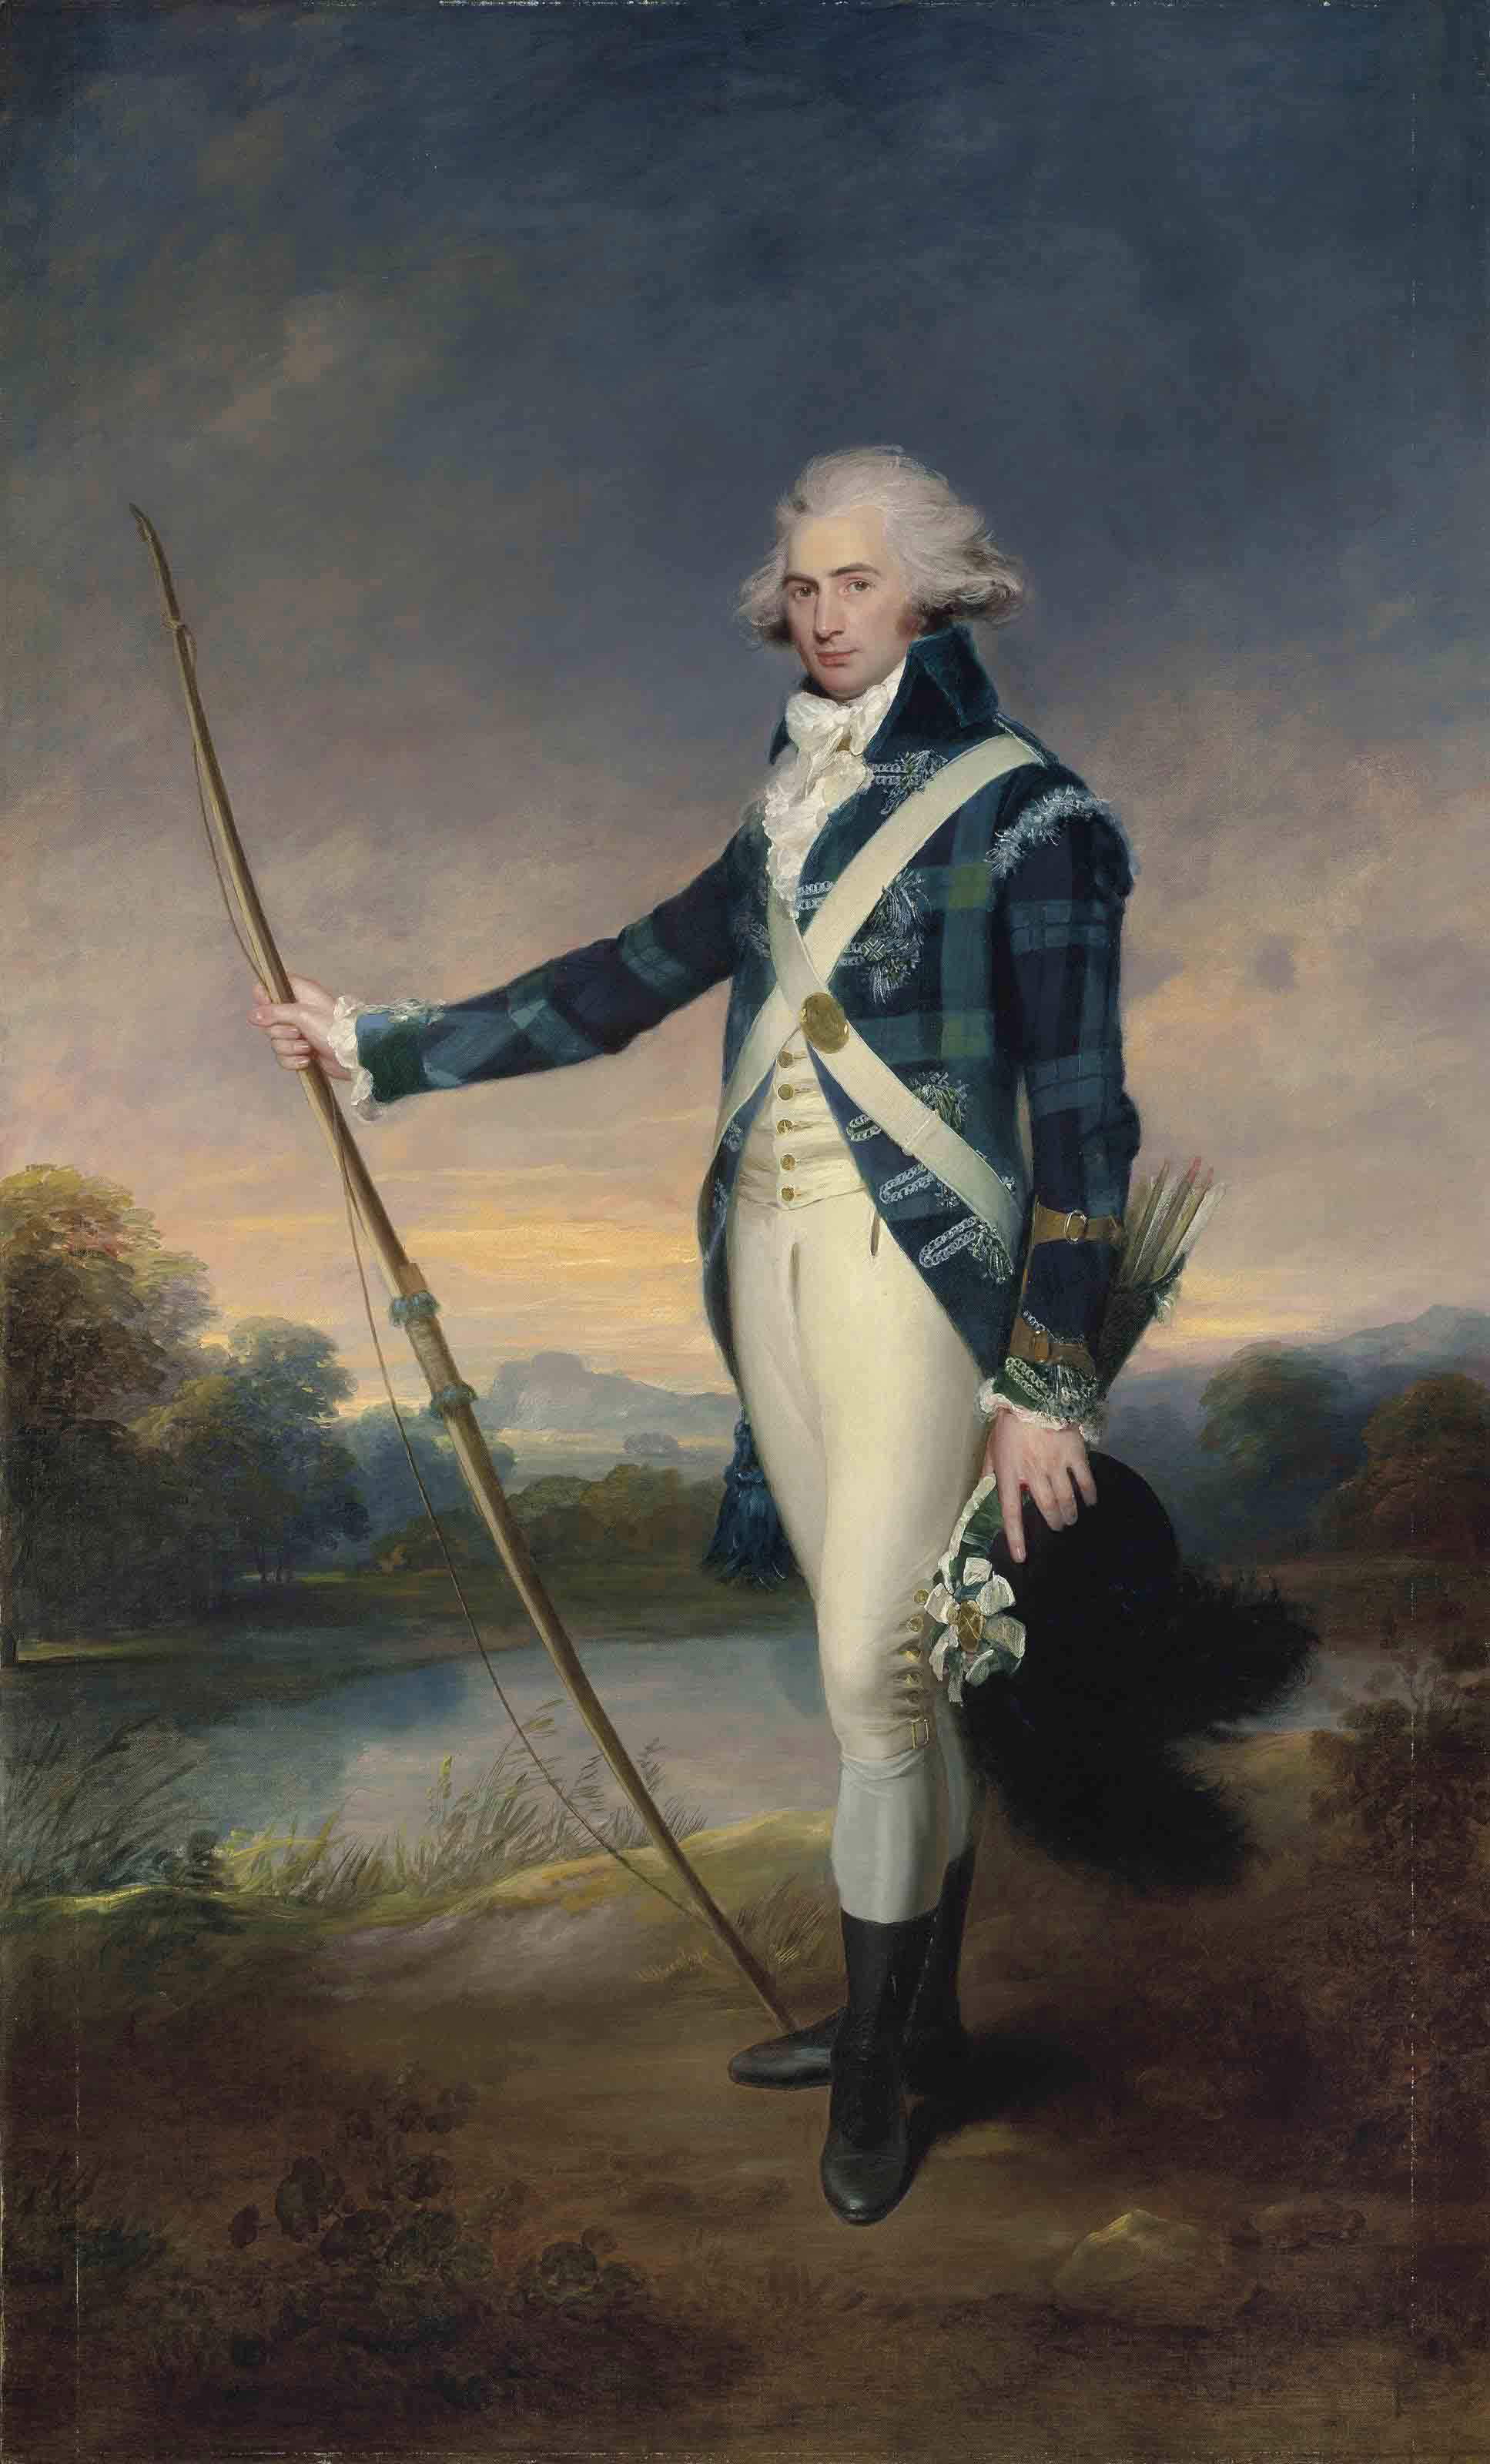 Portrait of George Douglas, 16th Earl of Morton, K.T. (1761-1827), full-length, holding a bow, in the dress of the Royal Company of Archers, holding a longbow and a black-plumed white cockaded cap, in Holyrood Park, with Duddingston Loch and Edinburgh Castle beyond